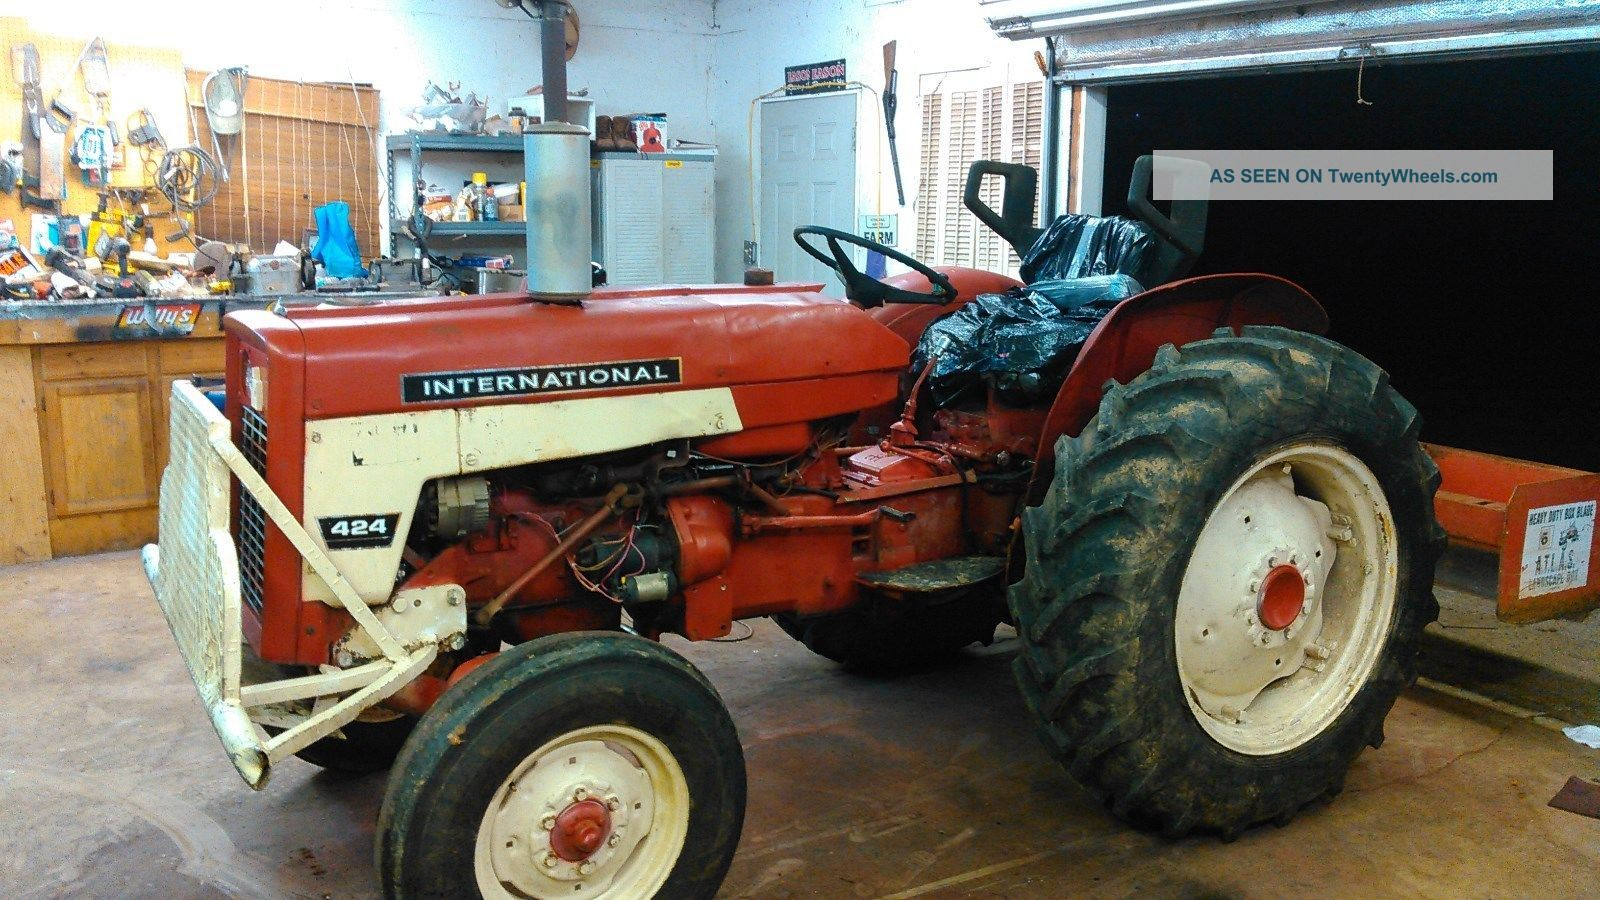 1966 international harverster 424 tractor 1, 647 hours antique & vintage  farm equip photo